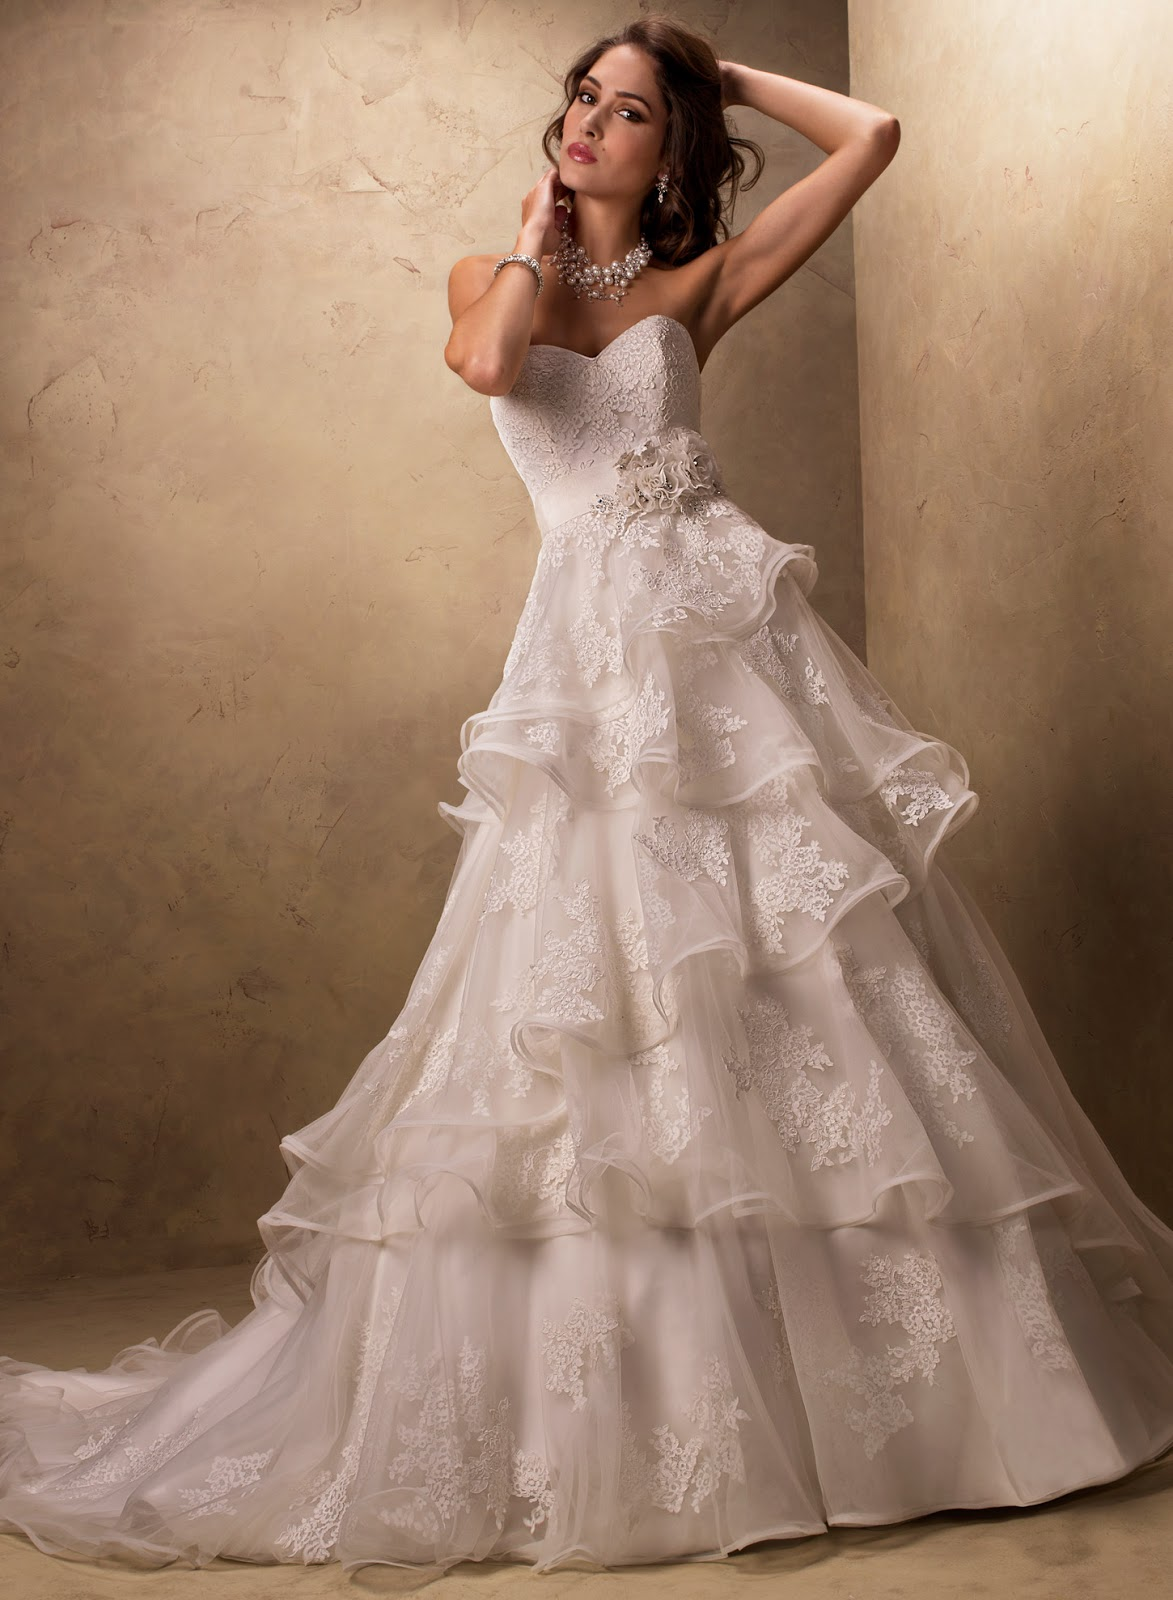 blog of wedding and occasion wear may 2013